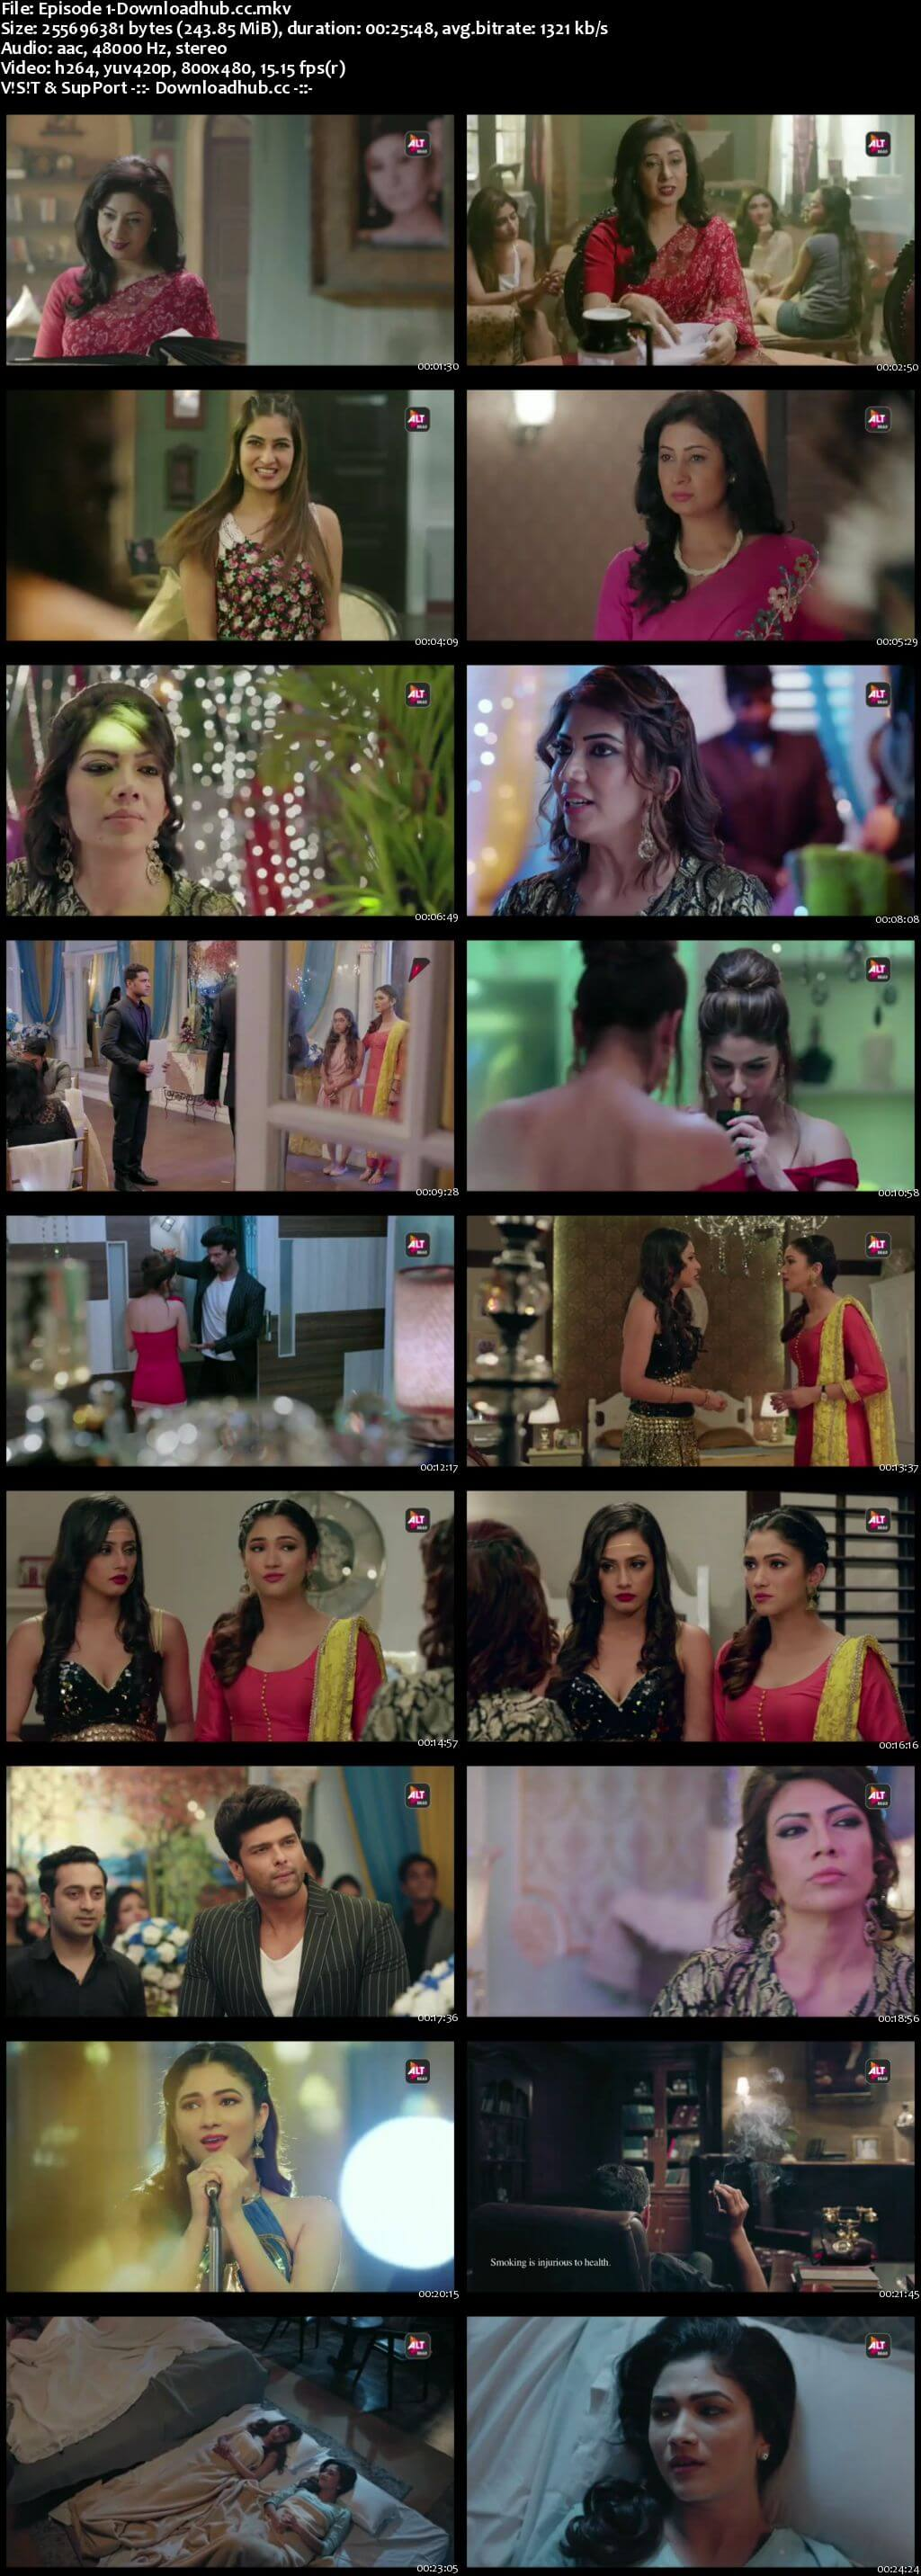 Hum 2018 Hindi Season 01 Complete 720p HDRip x264